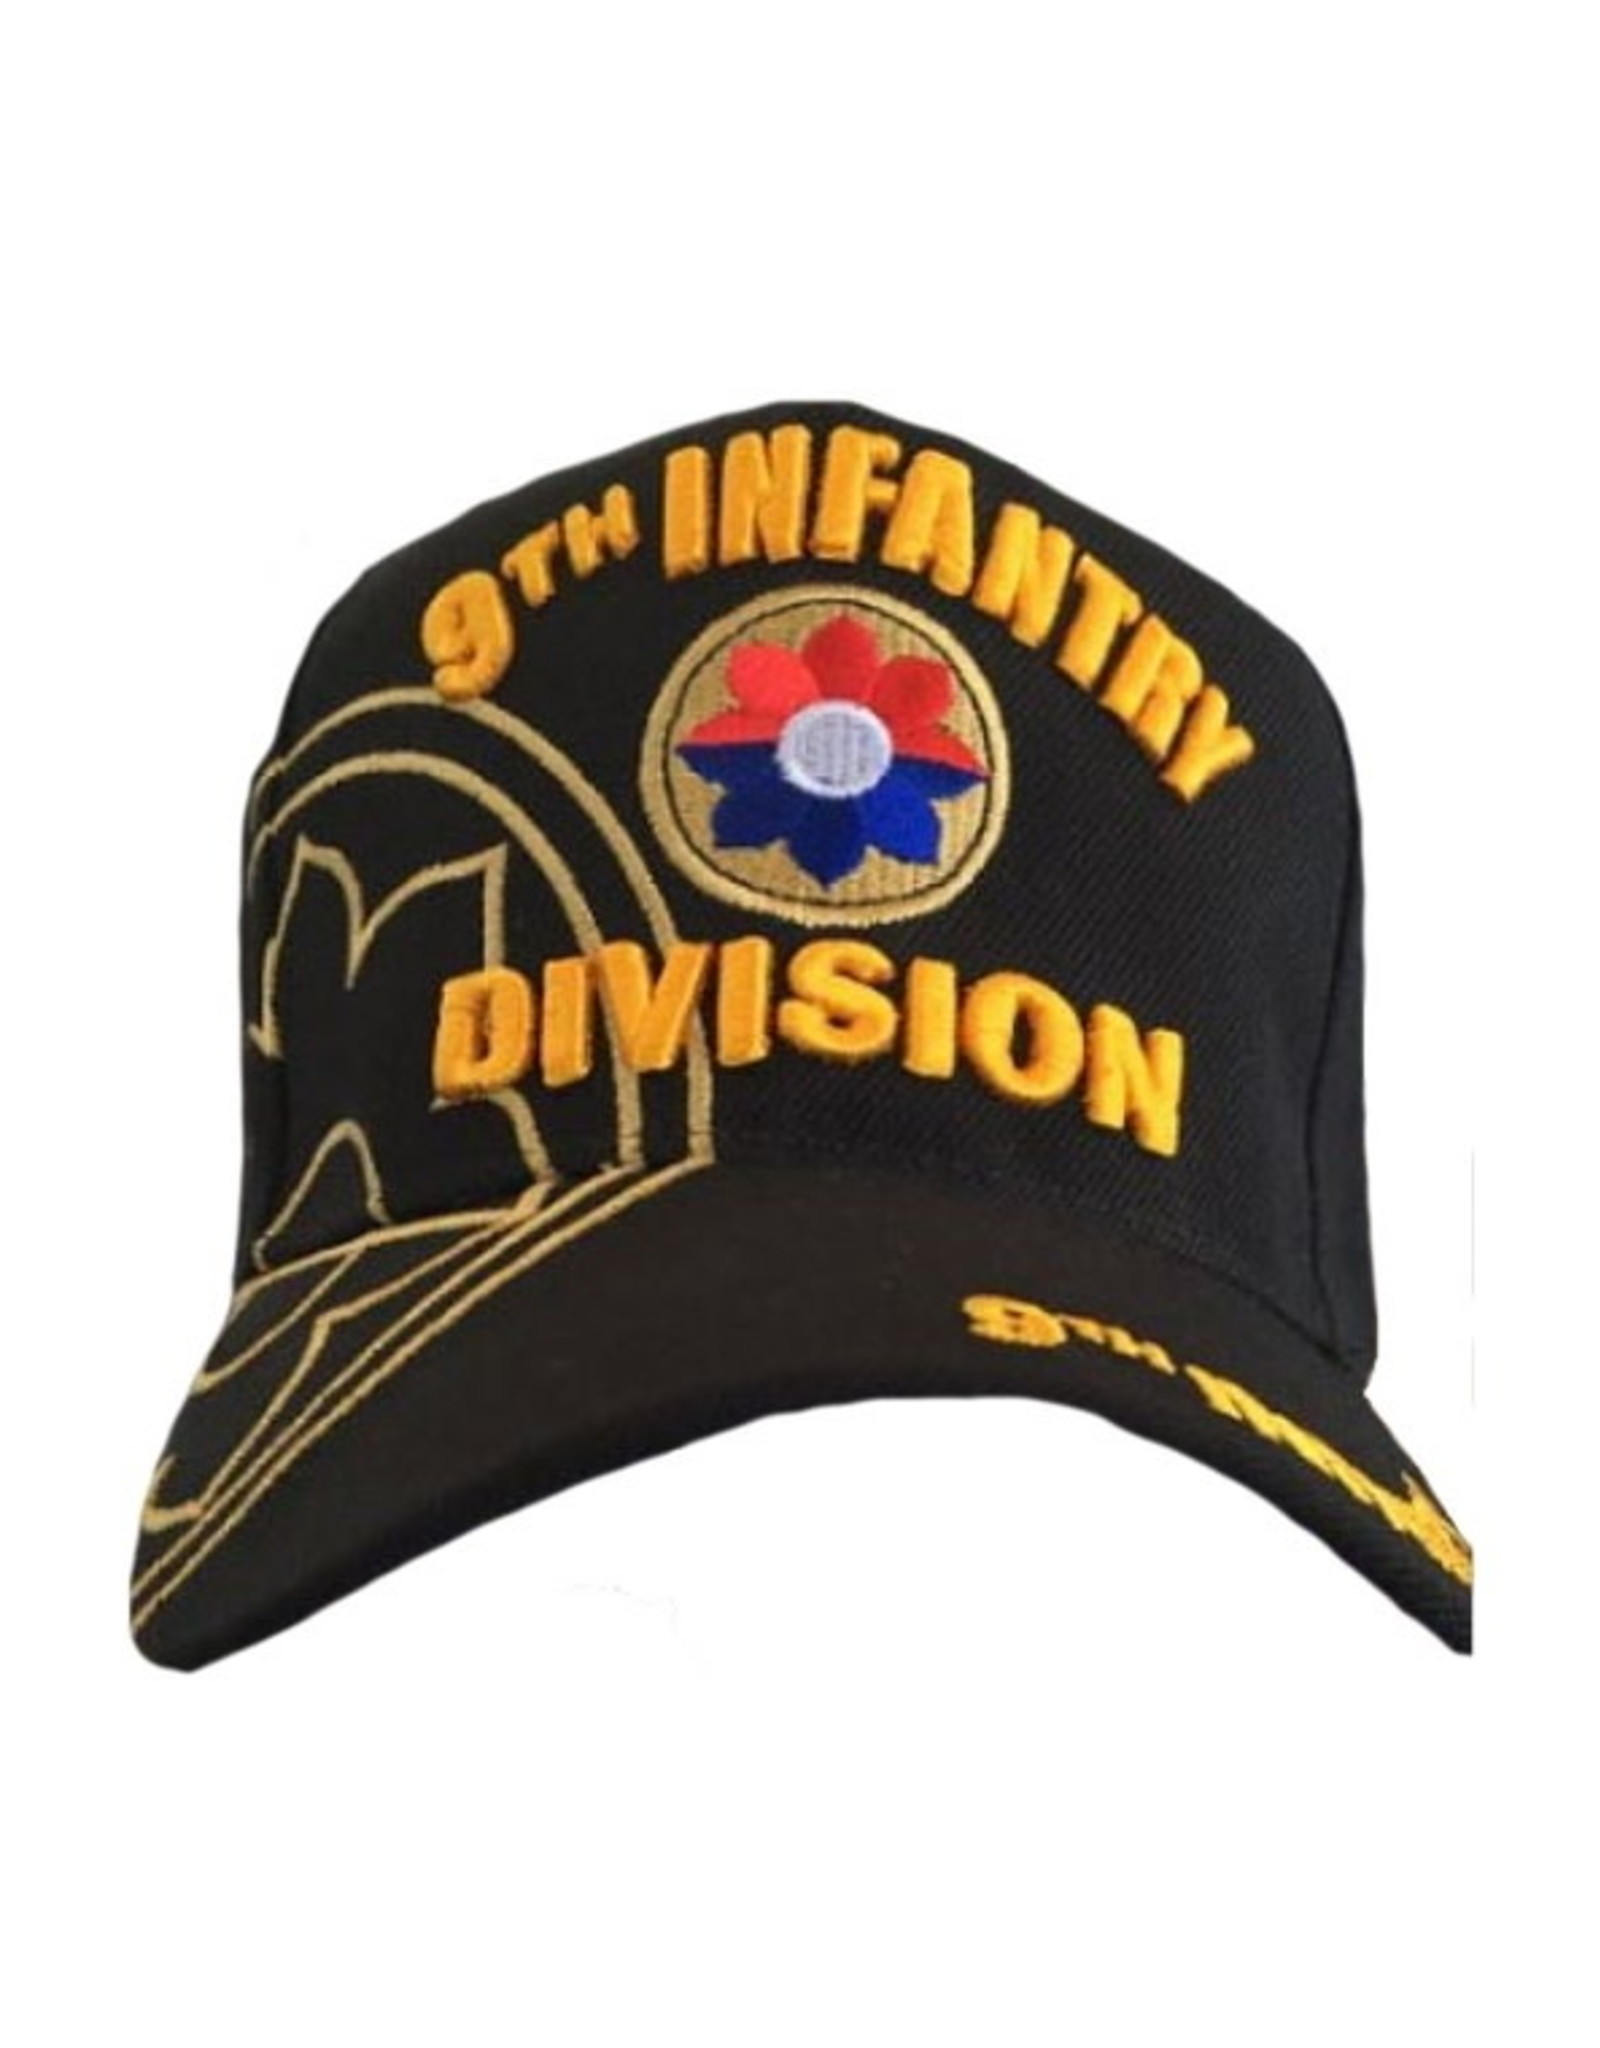 MidMil Army 9th Infantry Division Hat with Emblem and Over Shadow Black